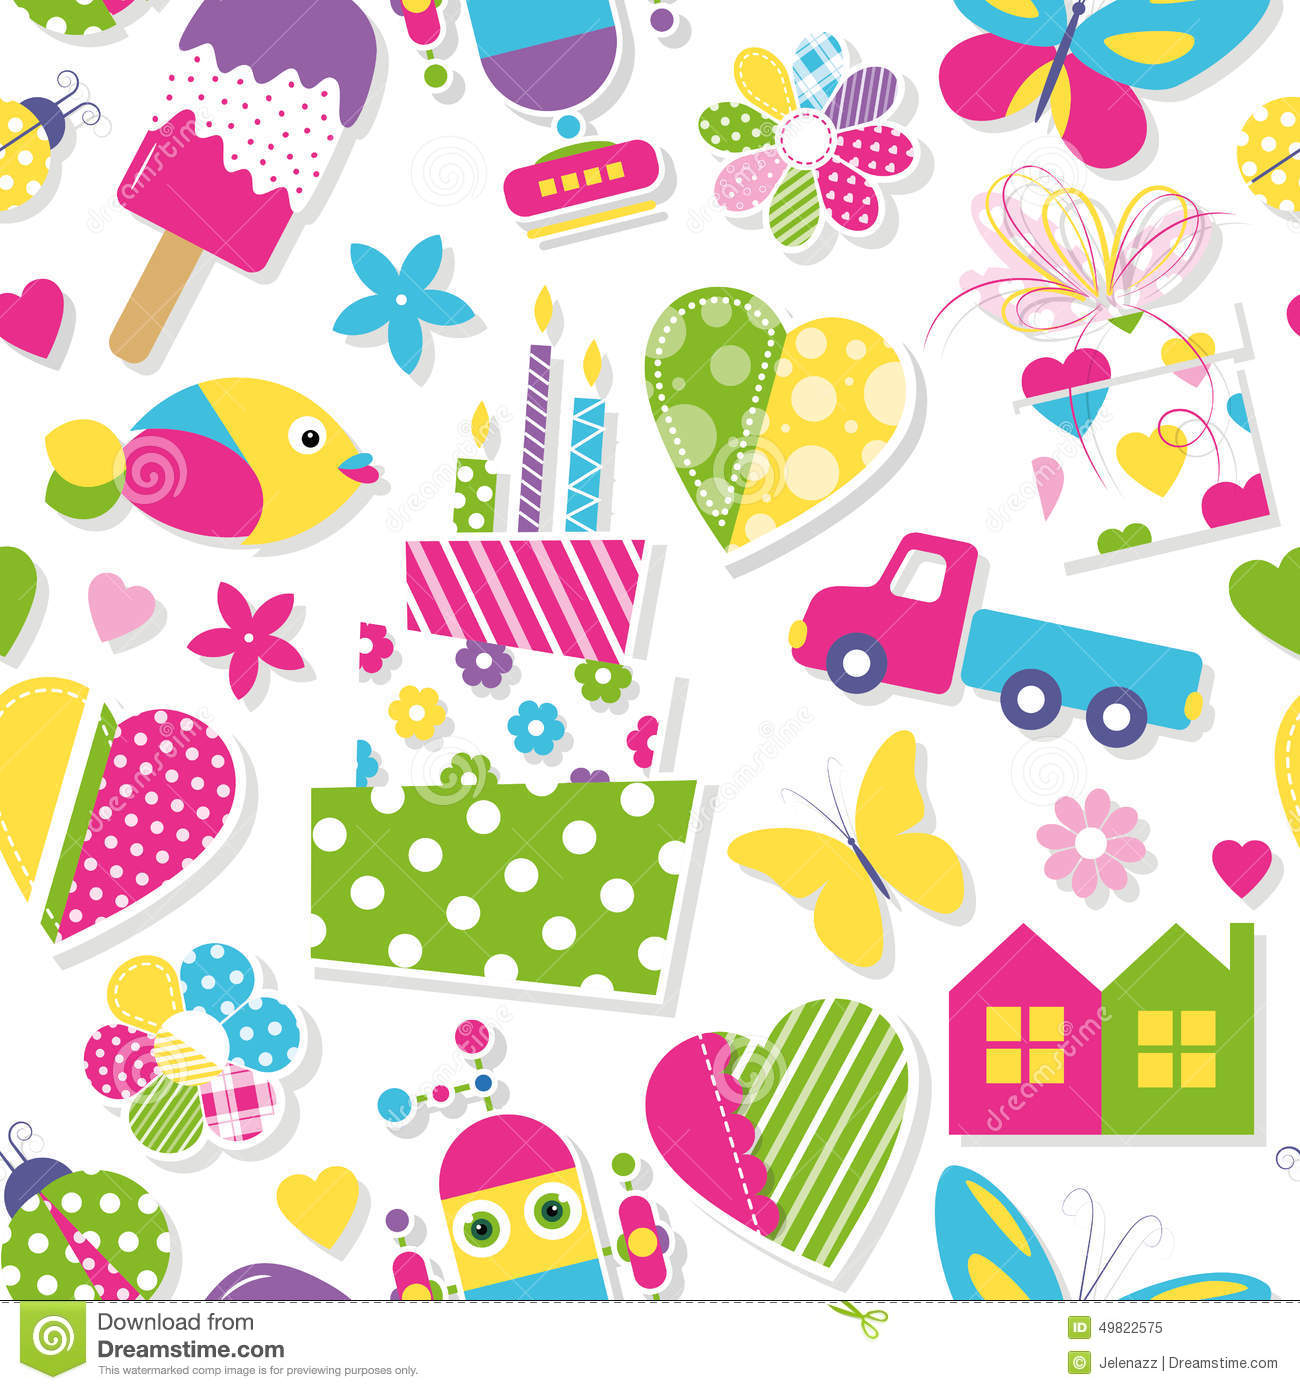 Girl Baby Shower Wallpaper Cute Birthday Cake Hearts Flowers Toys And Animals